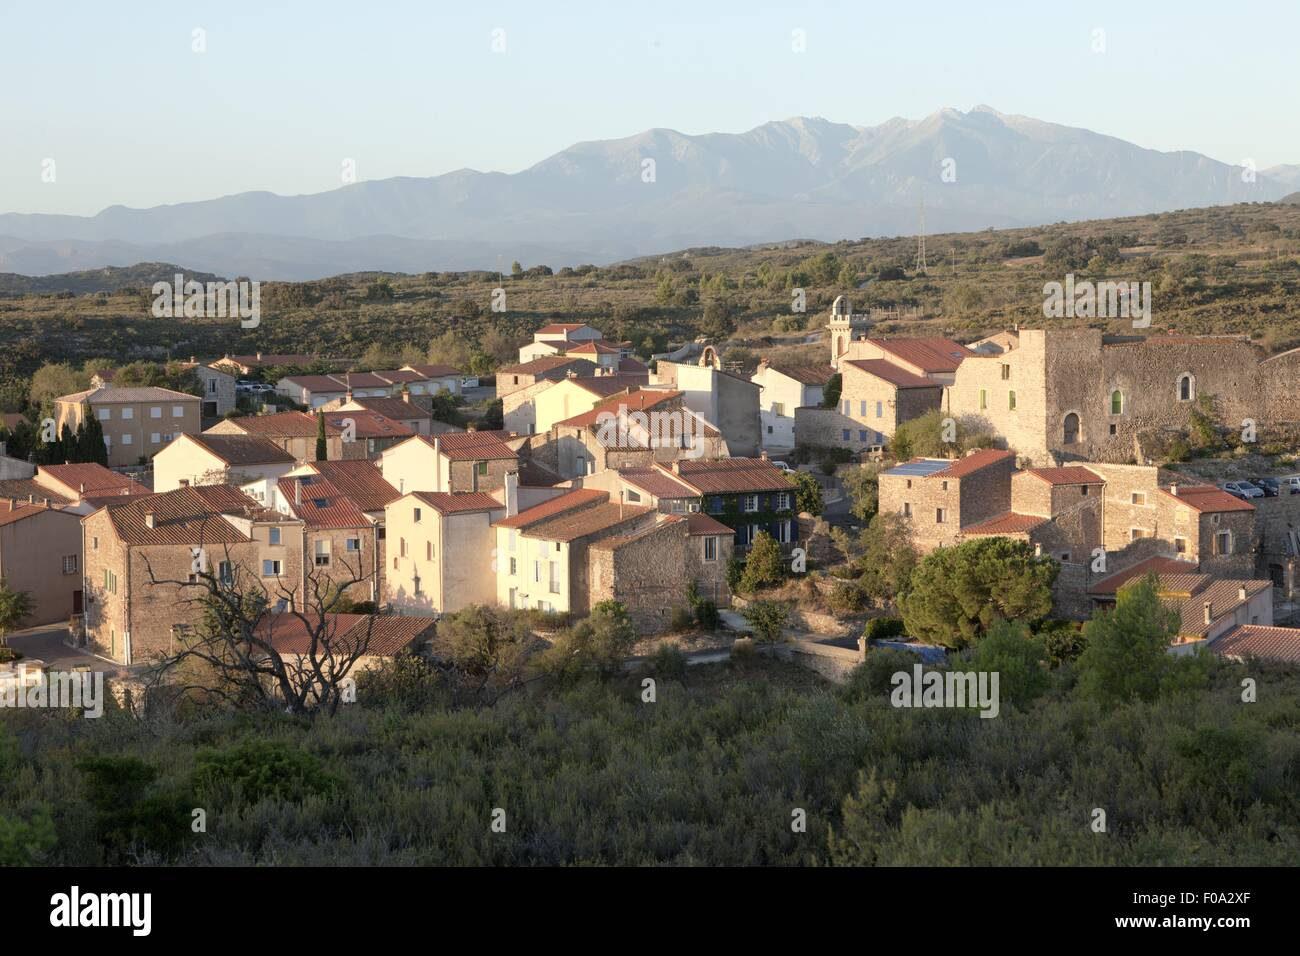 Vue sur le village de domaine de l'Horizon, France Photo Stock